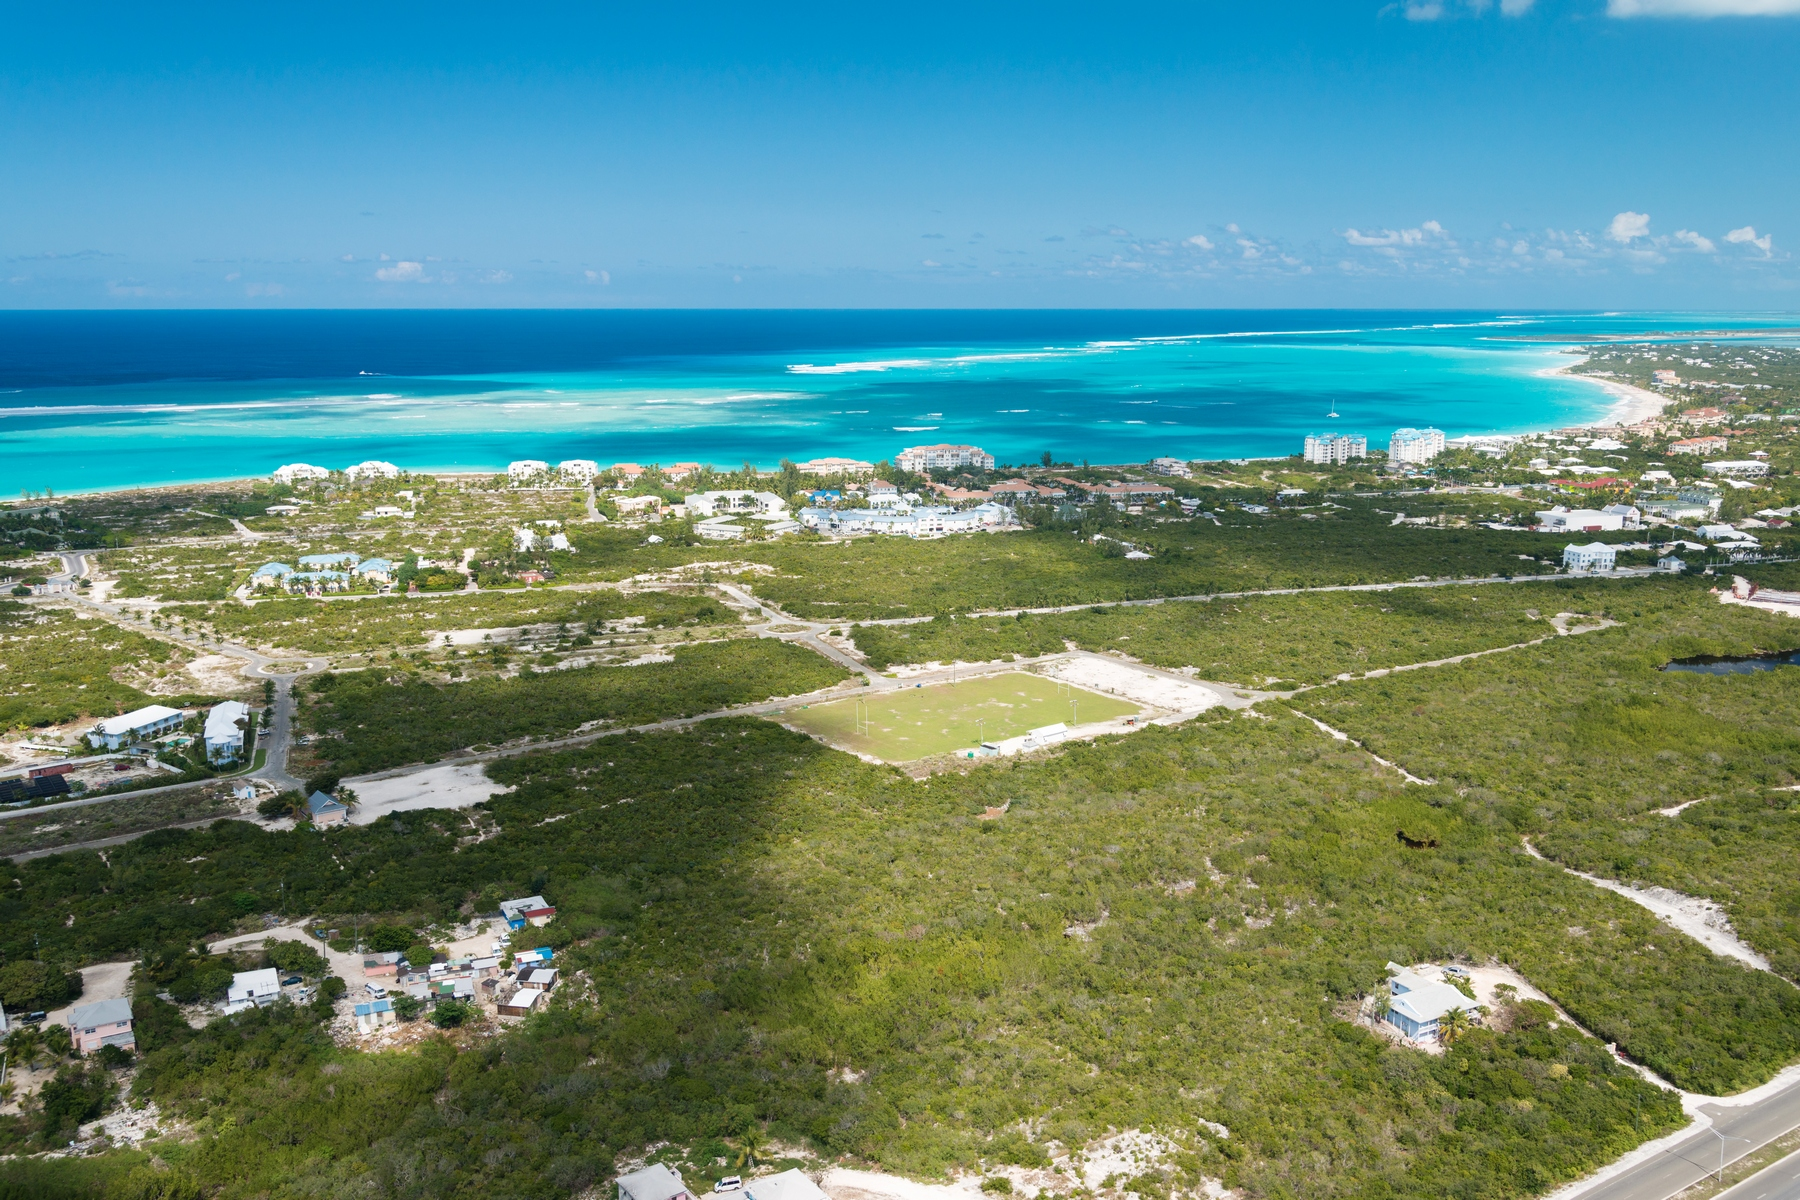 Other Residential for Sale at Village at Grace Bay Grace Bay, Providenciales, Turks And Caicos Islands